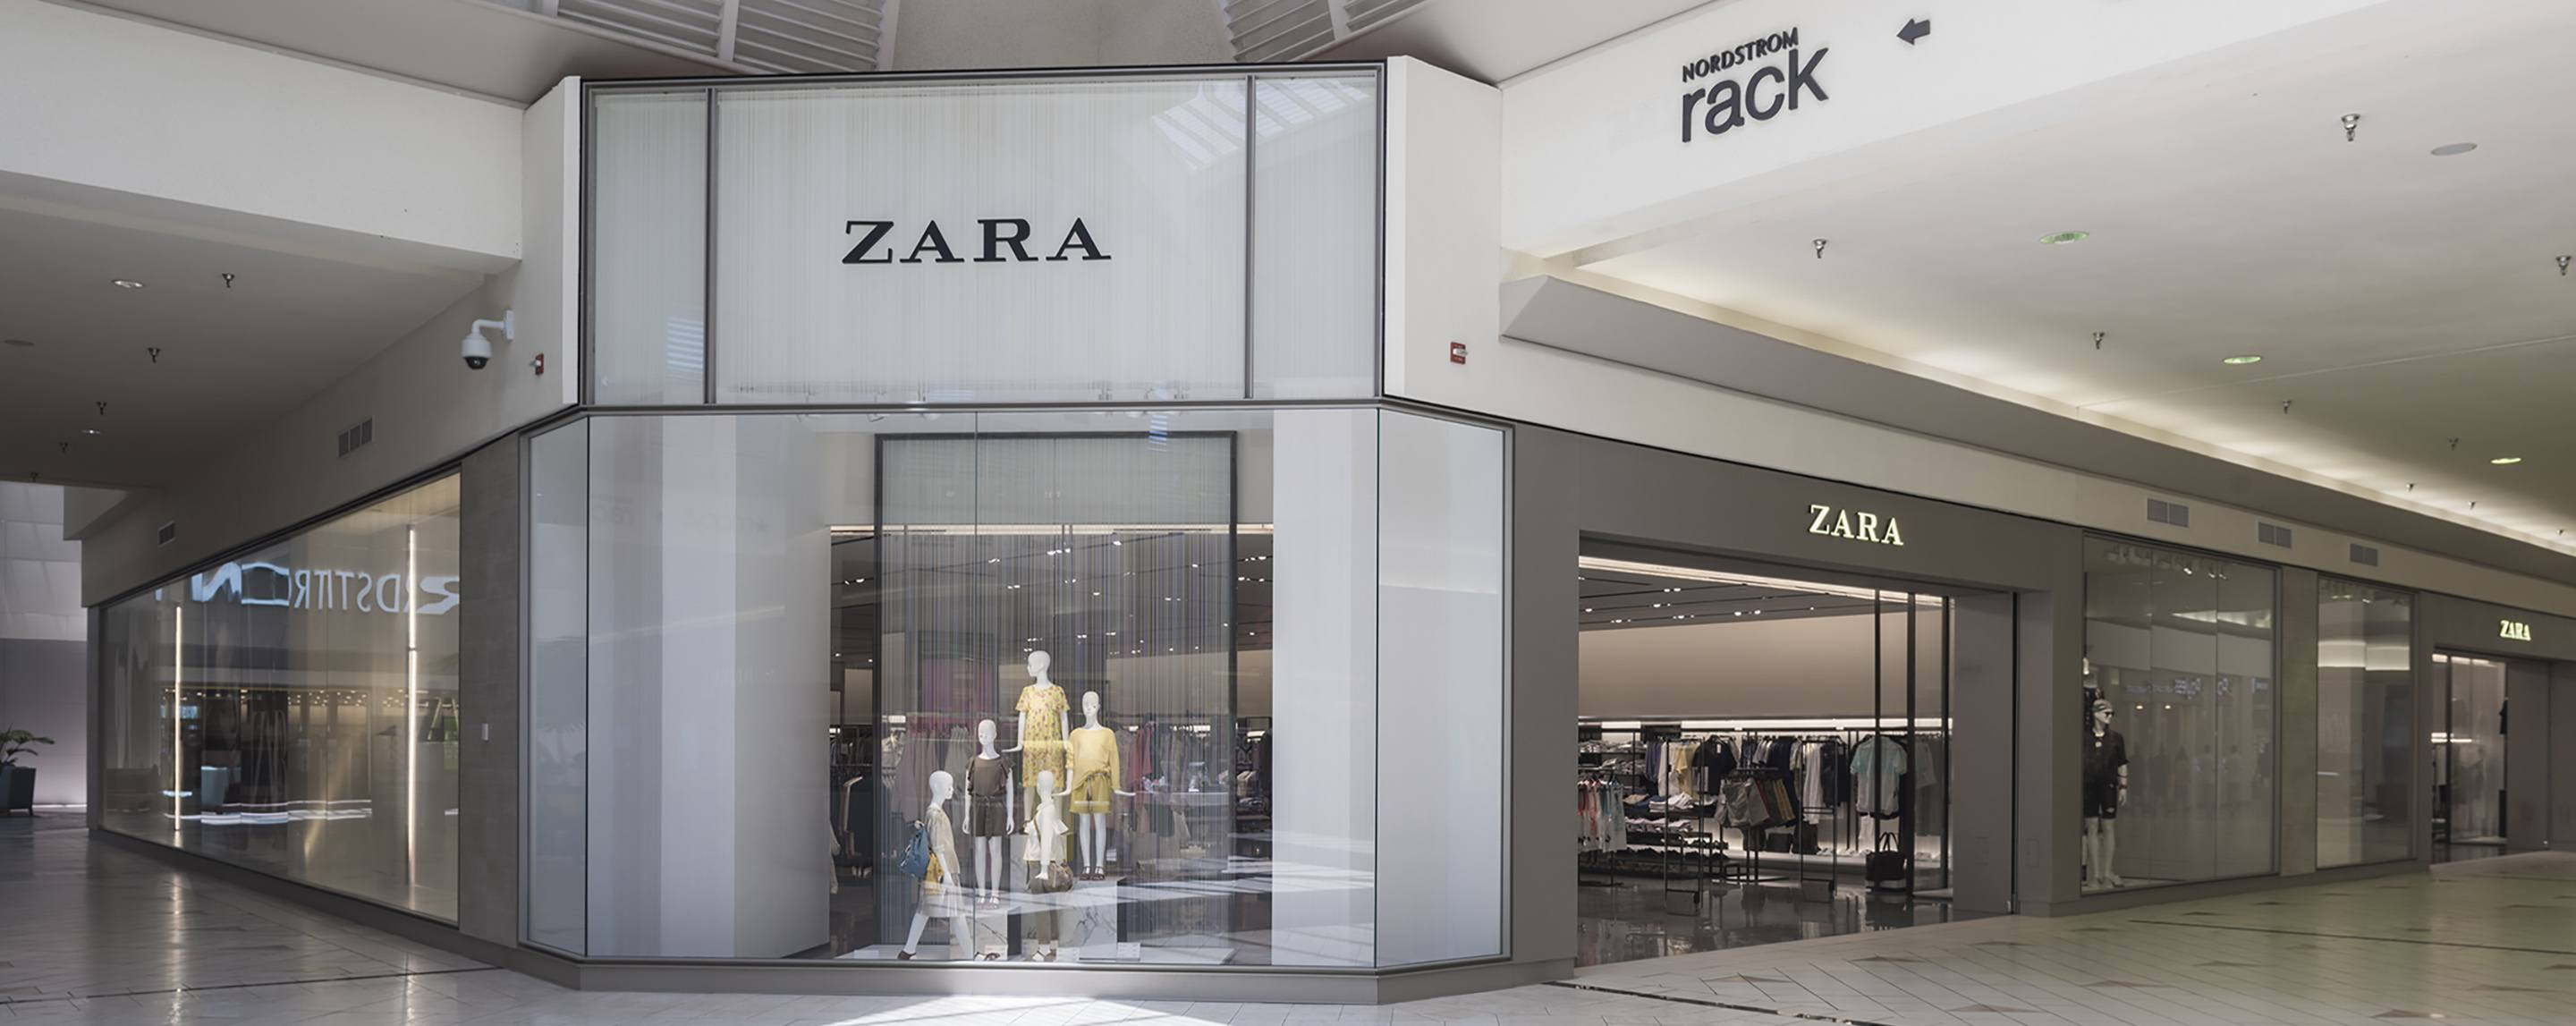 A family of brightly dressed mannequins inside of a Zara in a modern, tiled mall with gray walls.